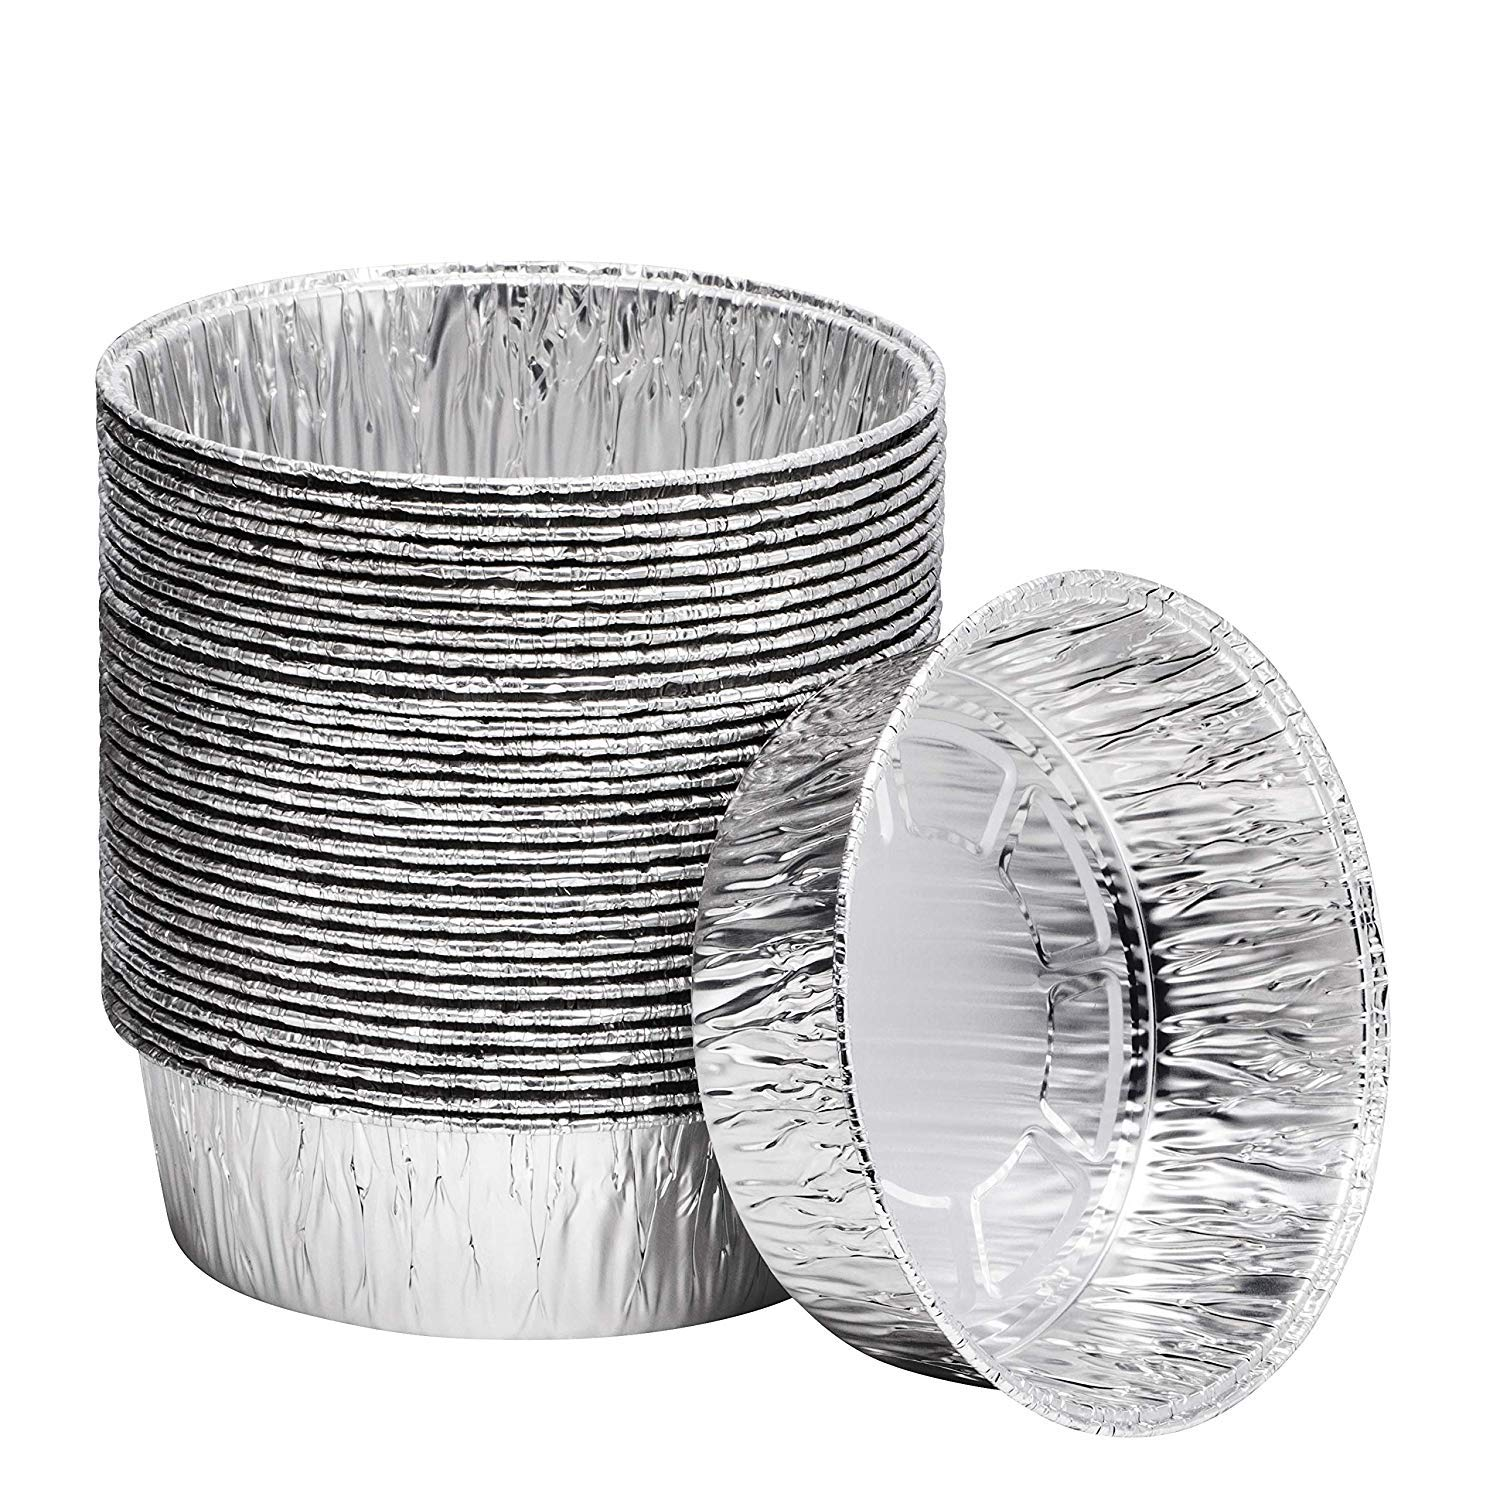 8 Inch Disposable Round Aluminum Pans - Cake Pan and Extra Deep Aluminum Foil Pans for Baking and Storage (10 Count) by Diplastible